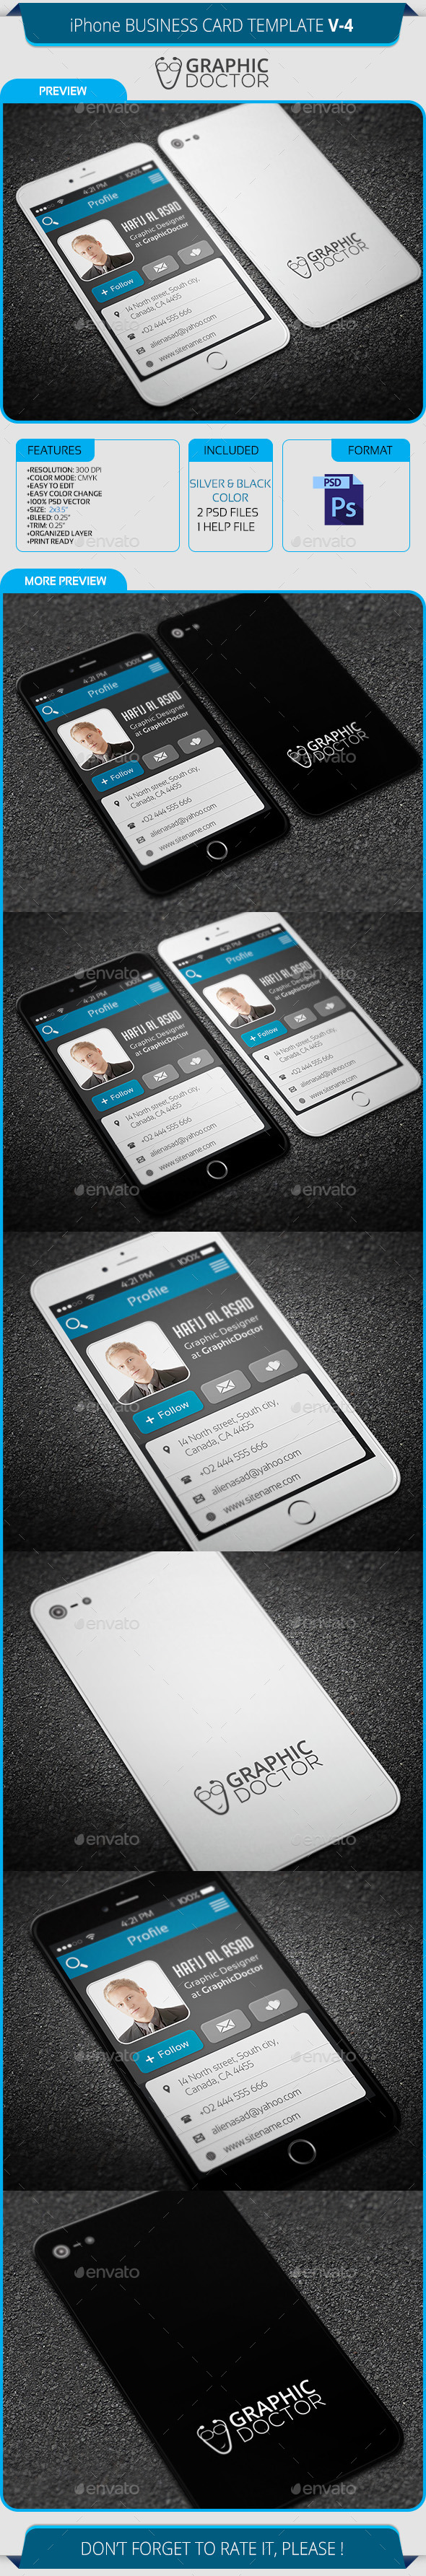 Iphone business card template v 4 by graphicdoctor graphicriver iphone business card template v 4 real objects business cards colourmoves